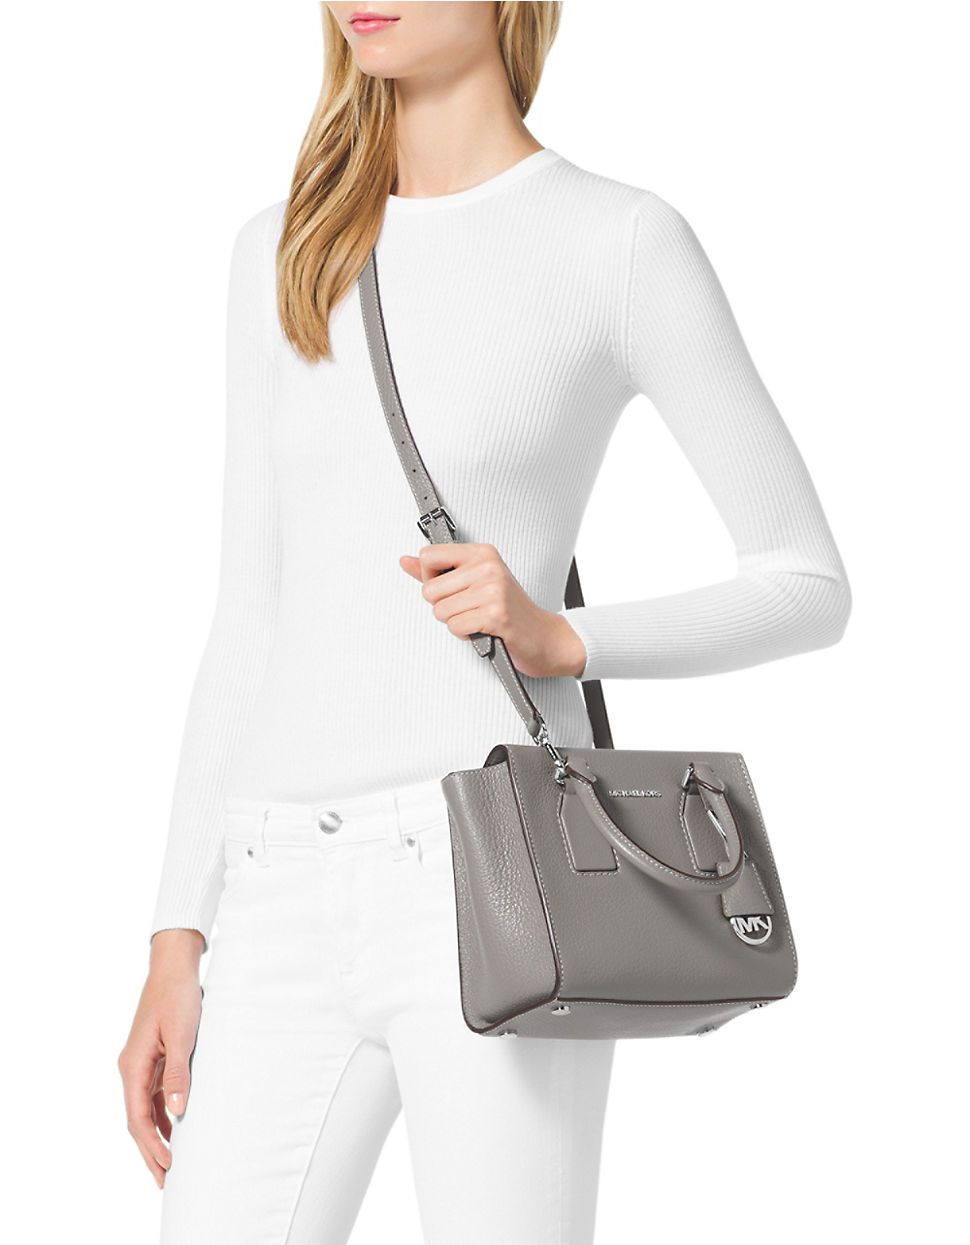 6c0c142d22e1 Michael michael kors Selby Medium Leather Messenger Bag in White (Pearl  Grey)